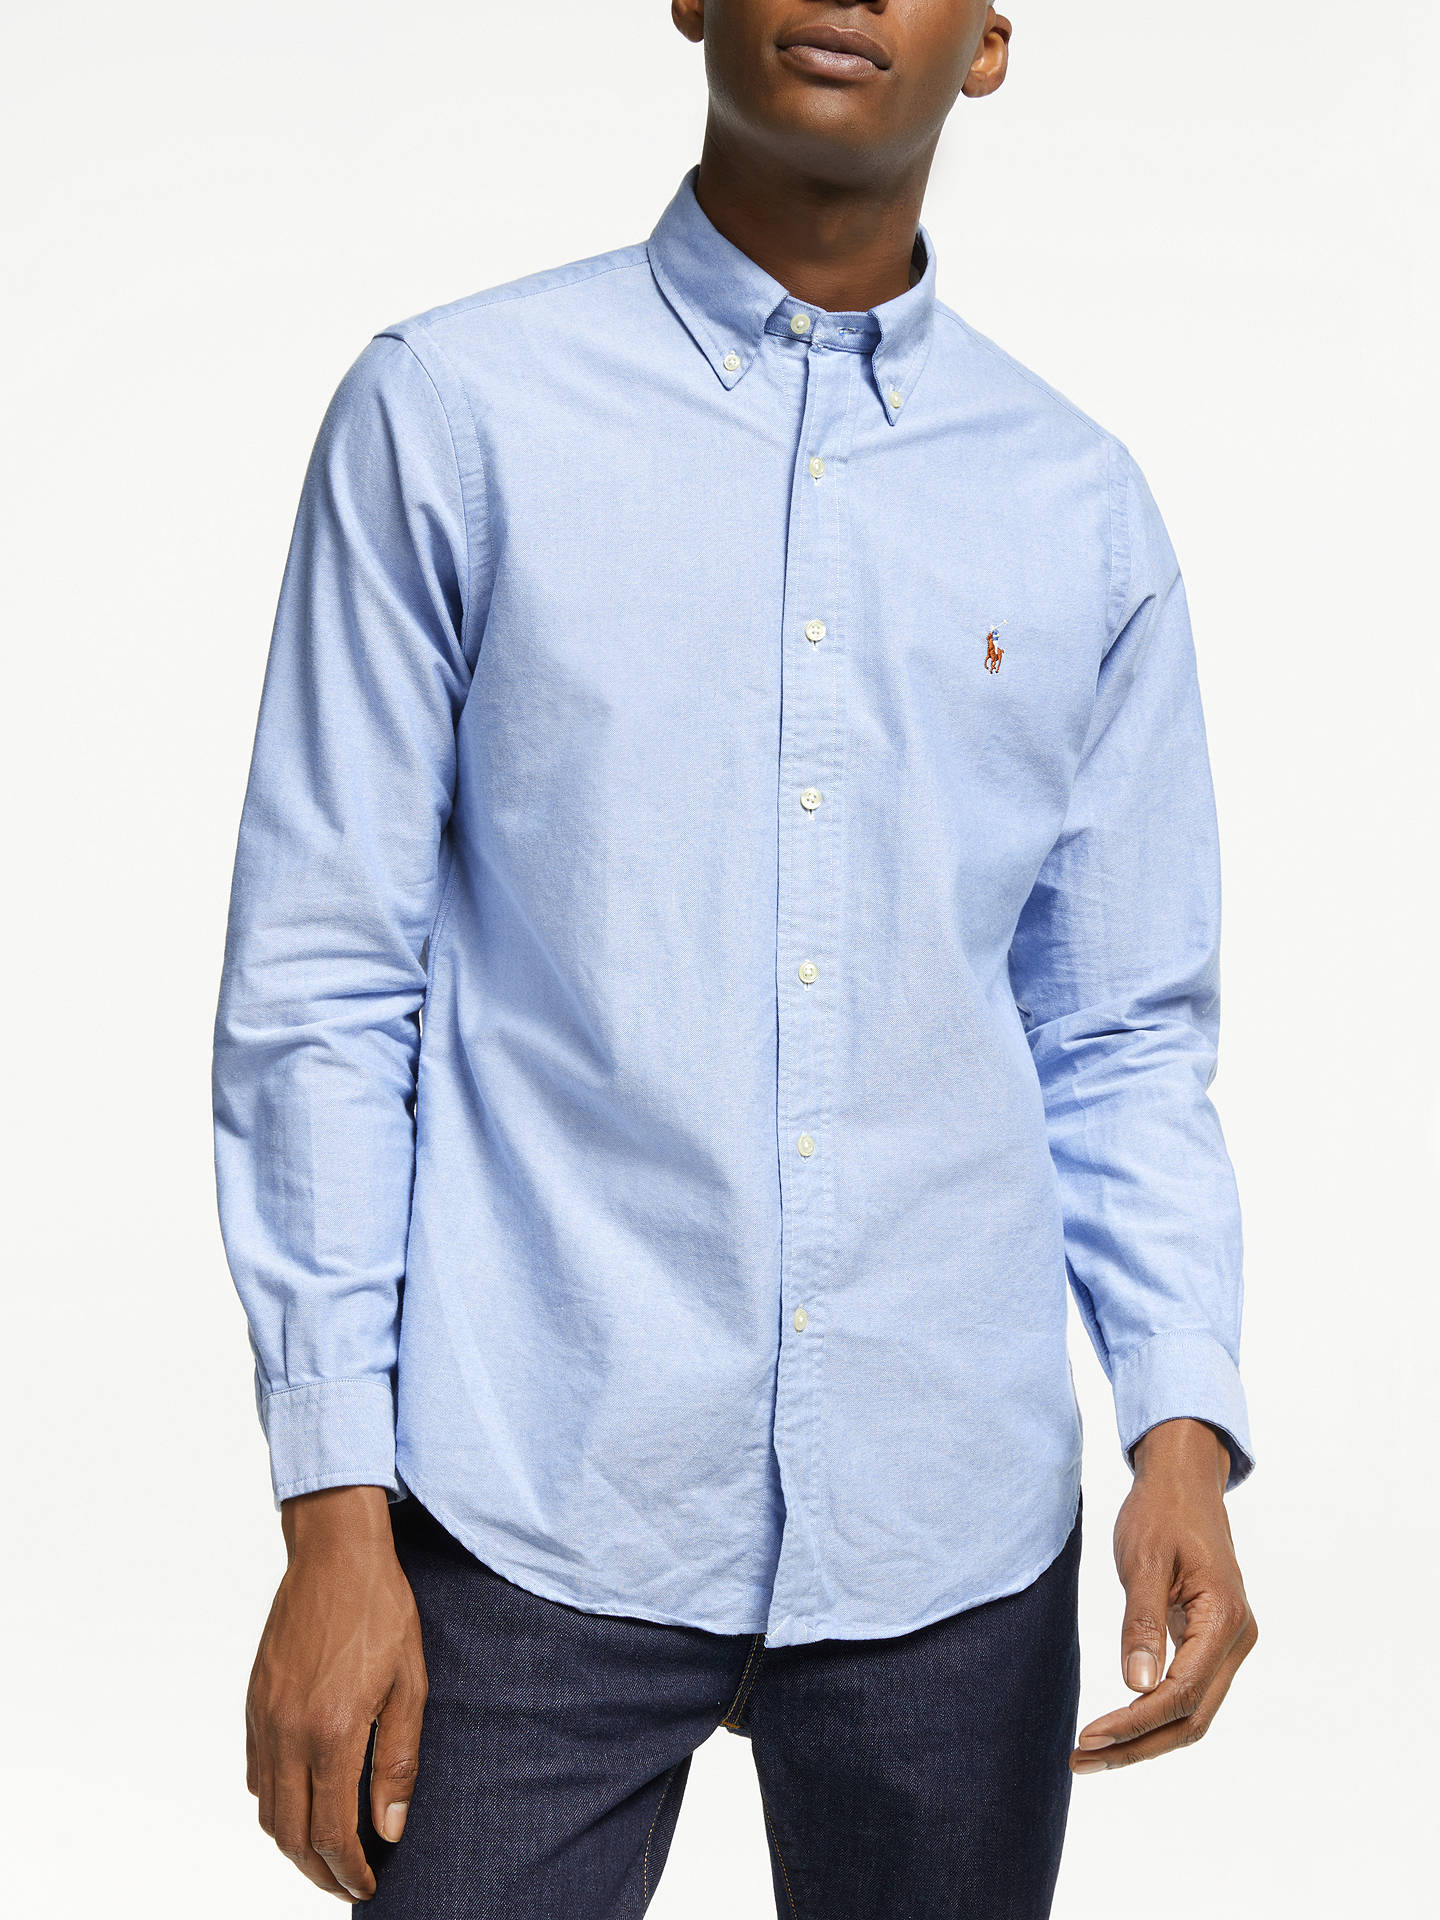 8a4b149696 Buy Polo Ralph Lauren Regular Fit Oxford Shirt